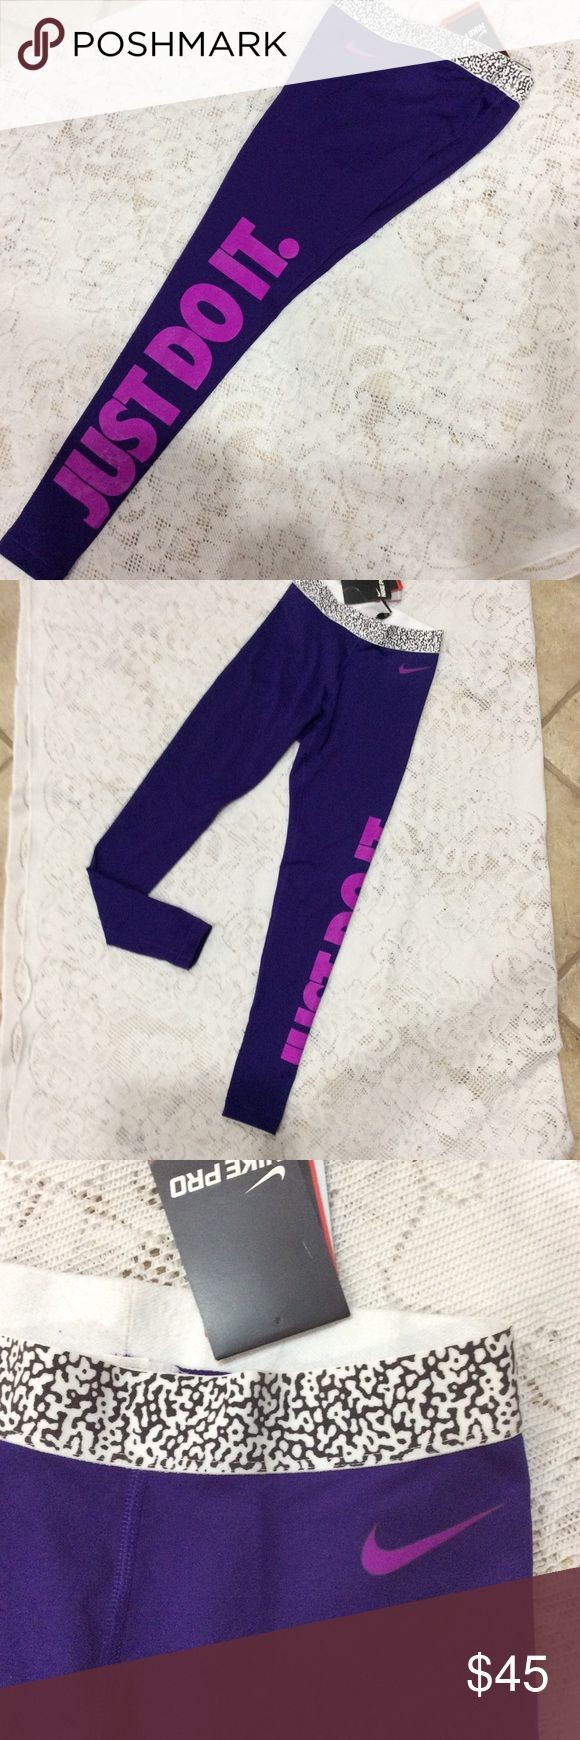 Nike Pro Hyperwarm training tights🌹 Nike Pro dri-fit Hyperwarm training tights. Deep purple with fuchsia lettering. Elastic waistband. Ladies size XS. NWT. Nike Pro Pants